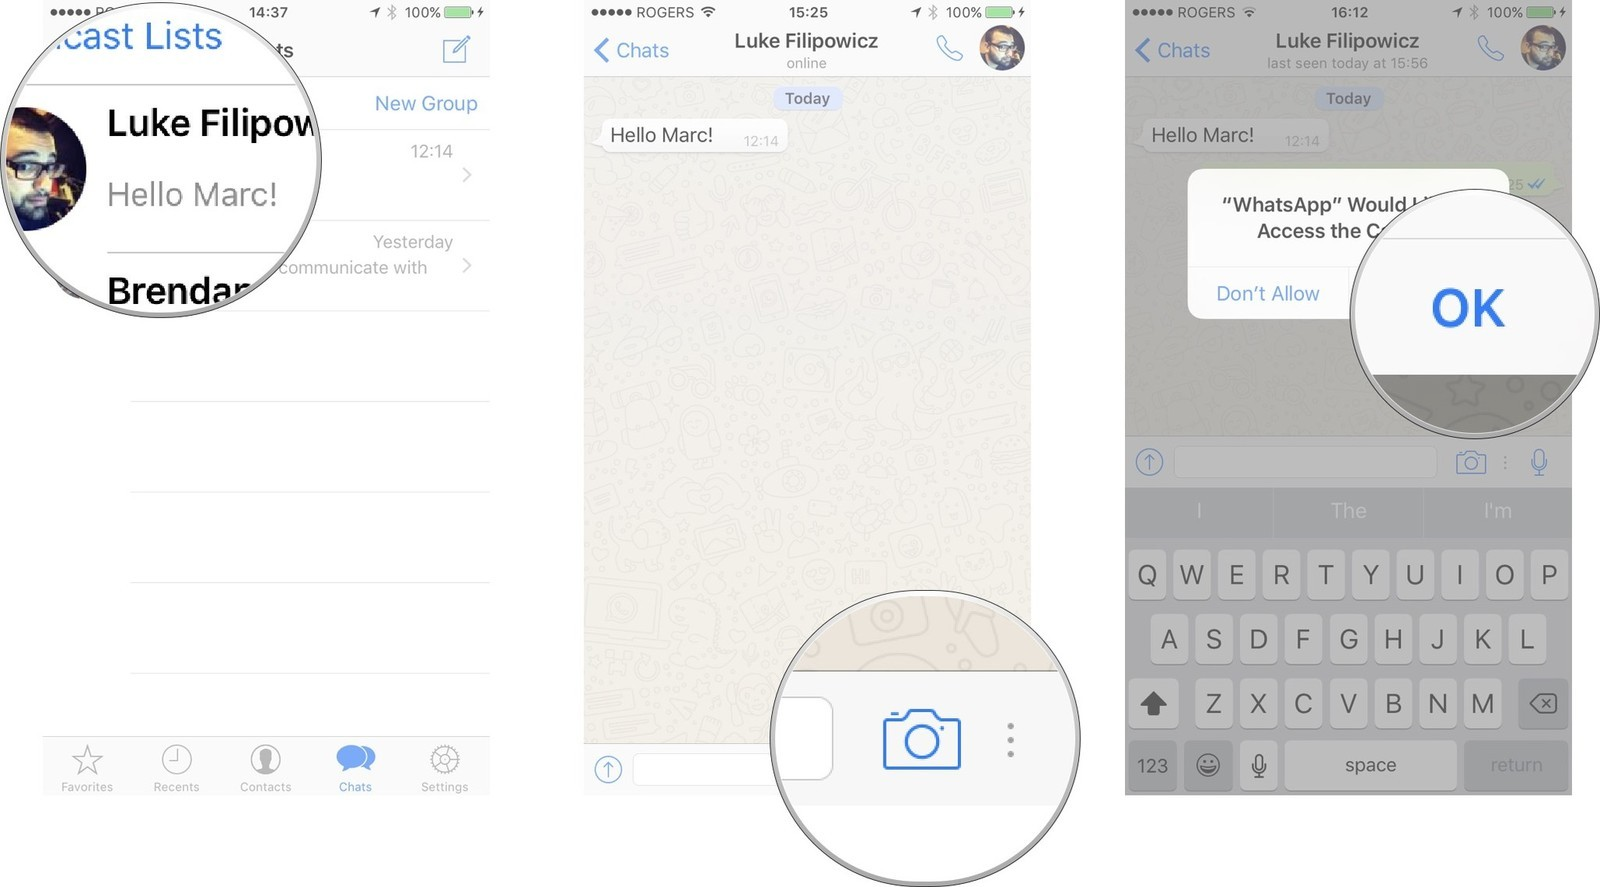 Tap on an active chat, tap the Camera button, tap OK to allow WhatsApp access to the camera.